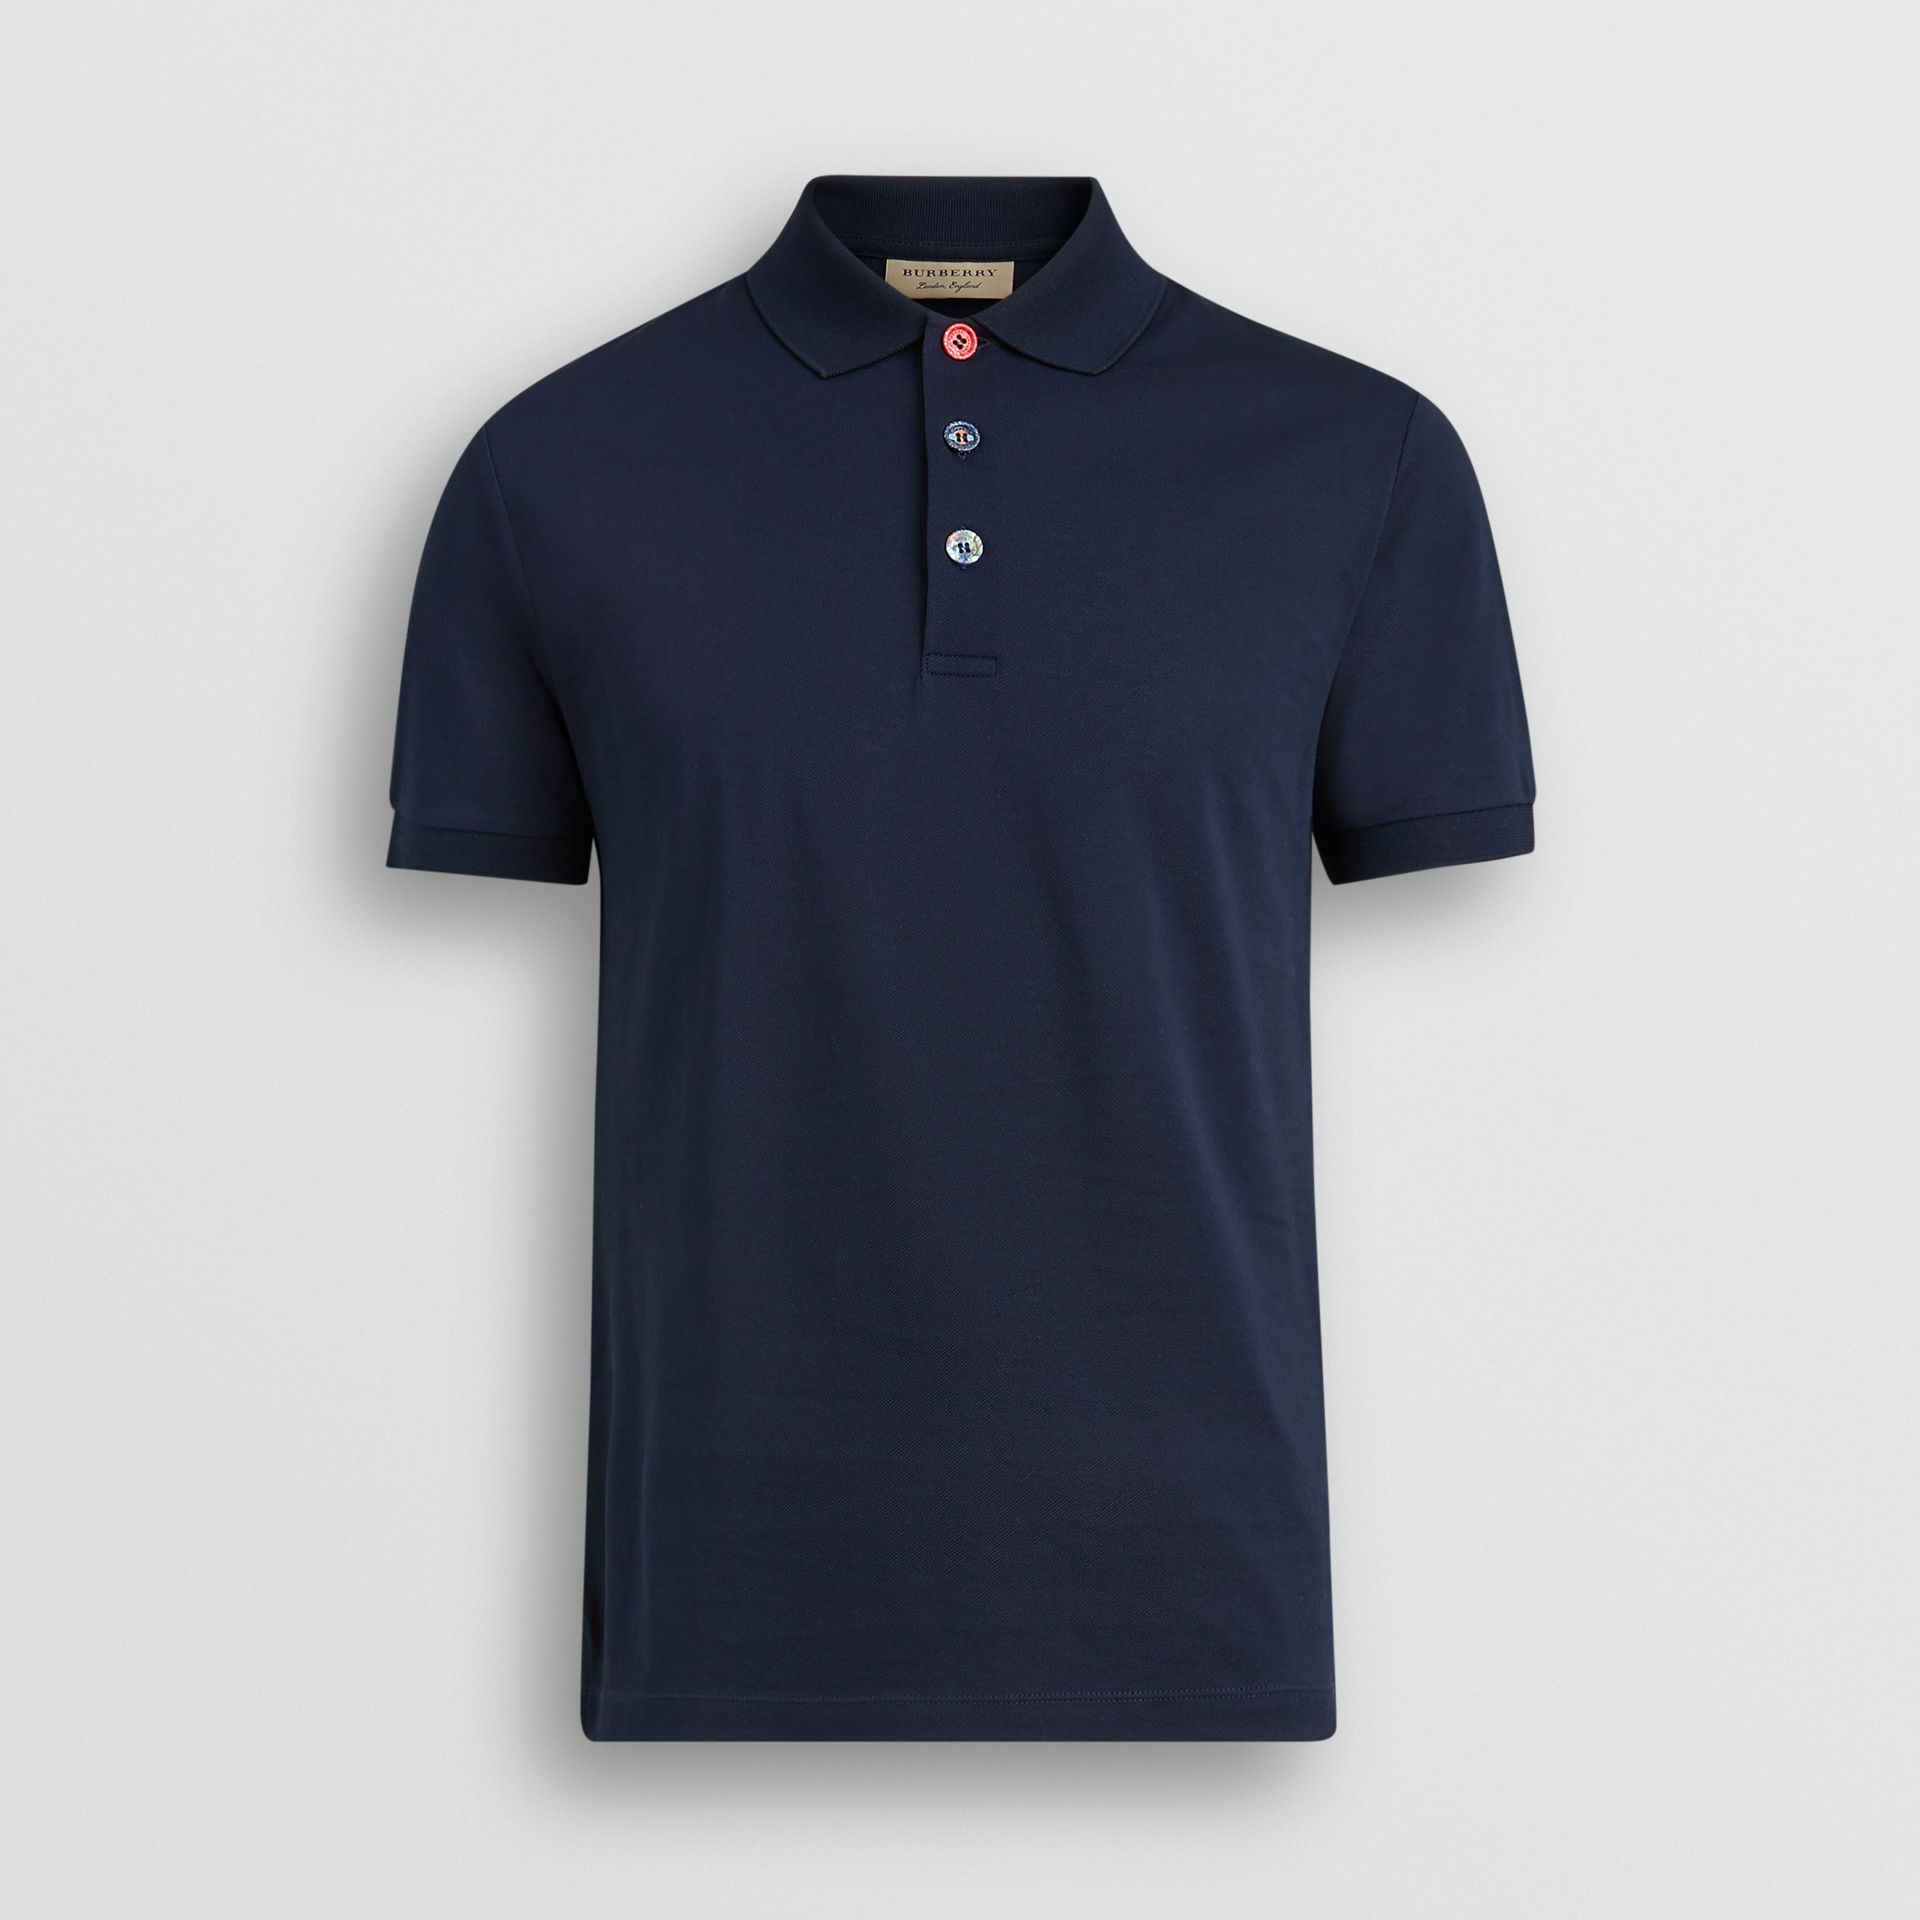 Painted Button Cotton Piqué Polo Shirt in Navy - Men | Burberry Hong Kong - gallery image 3